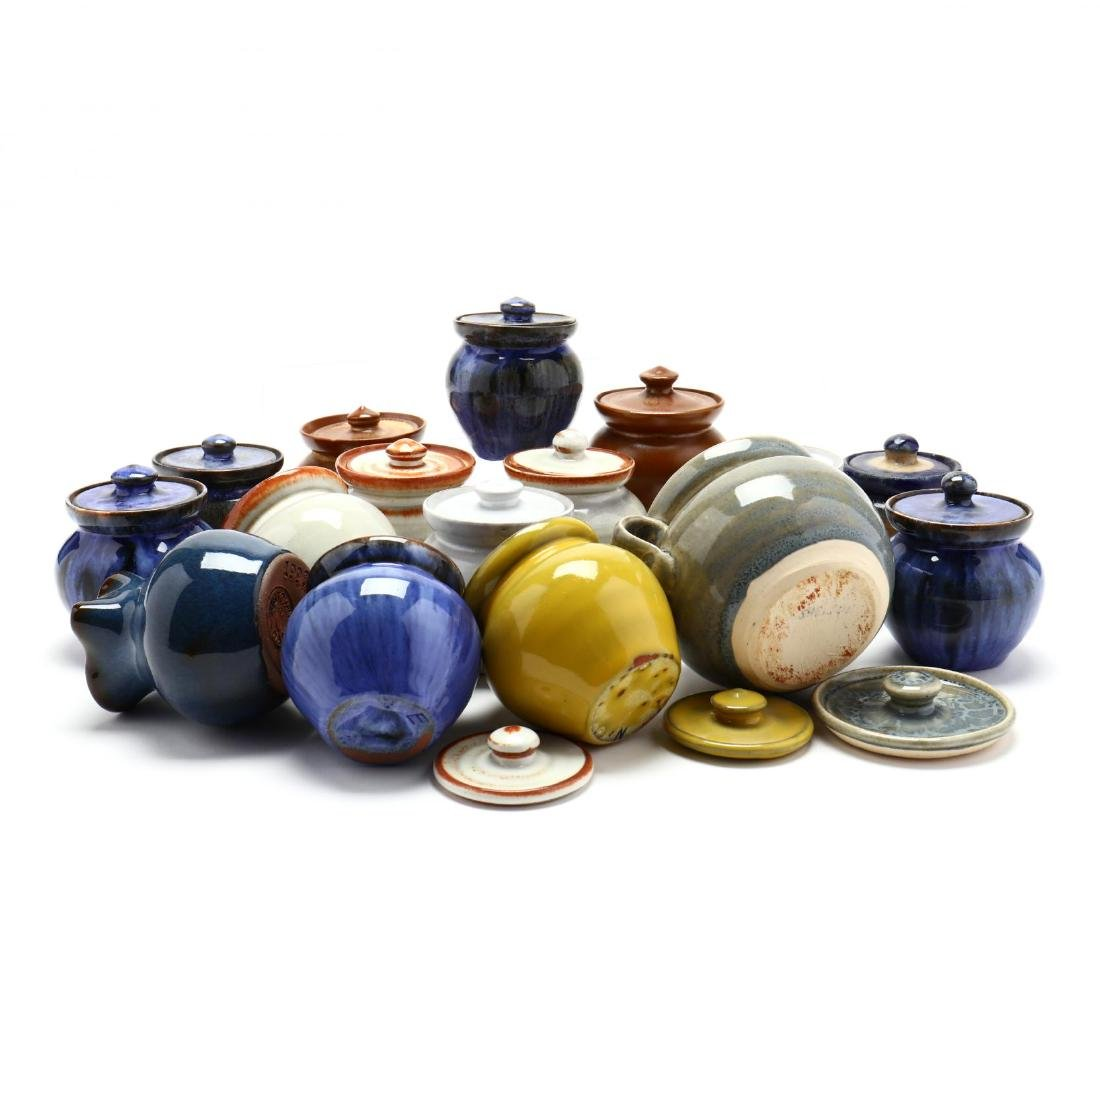 A Collection of Sugar Bowls - 3